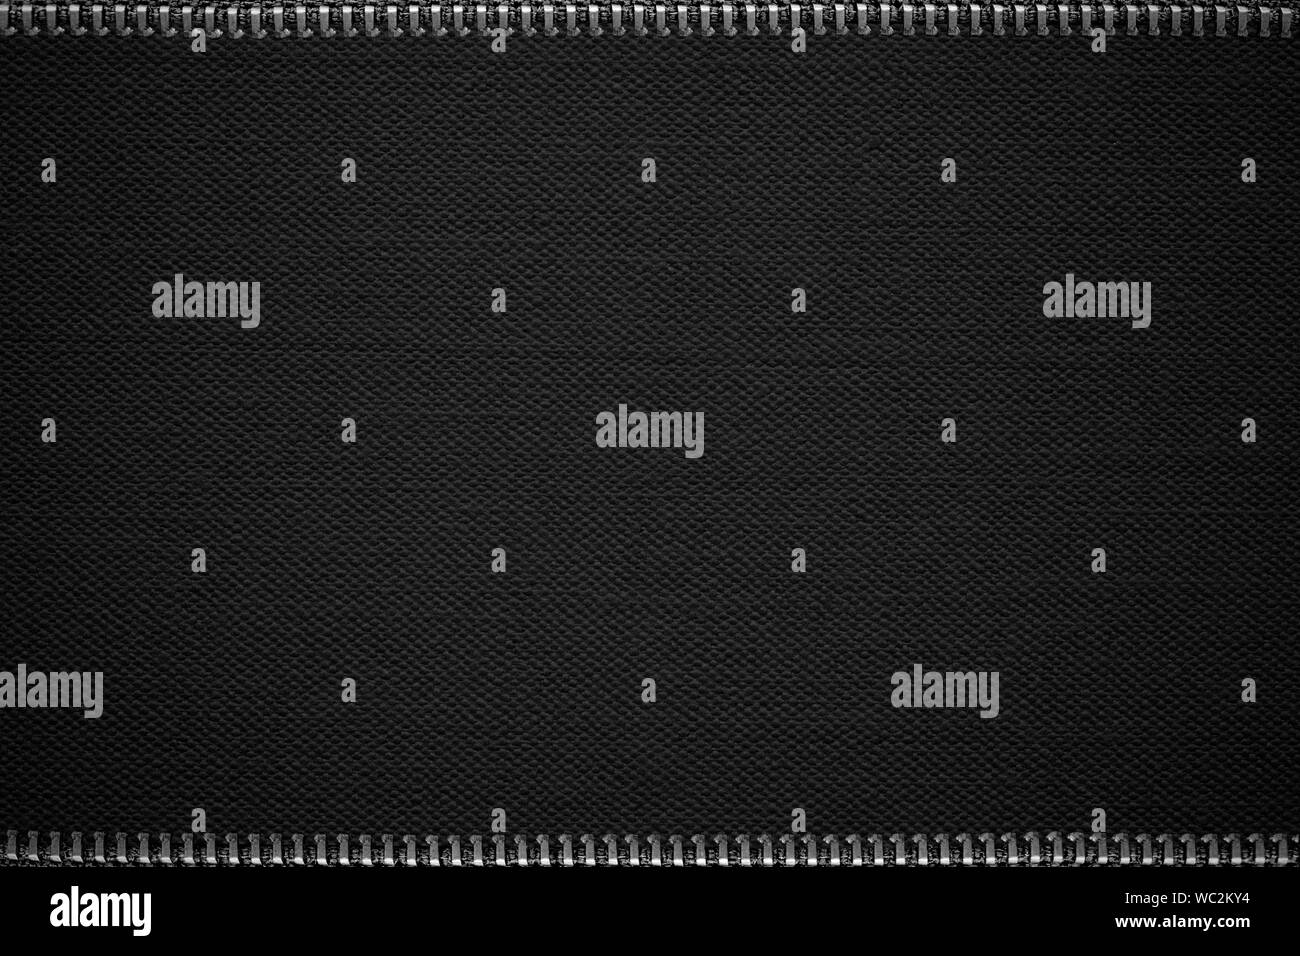 black abstract background or cloth grid pattern texture with silver zips Stock Photo